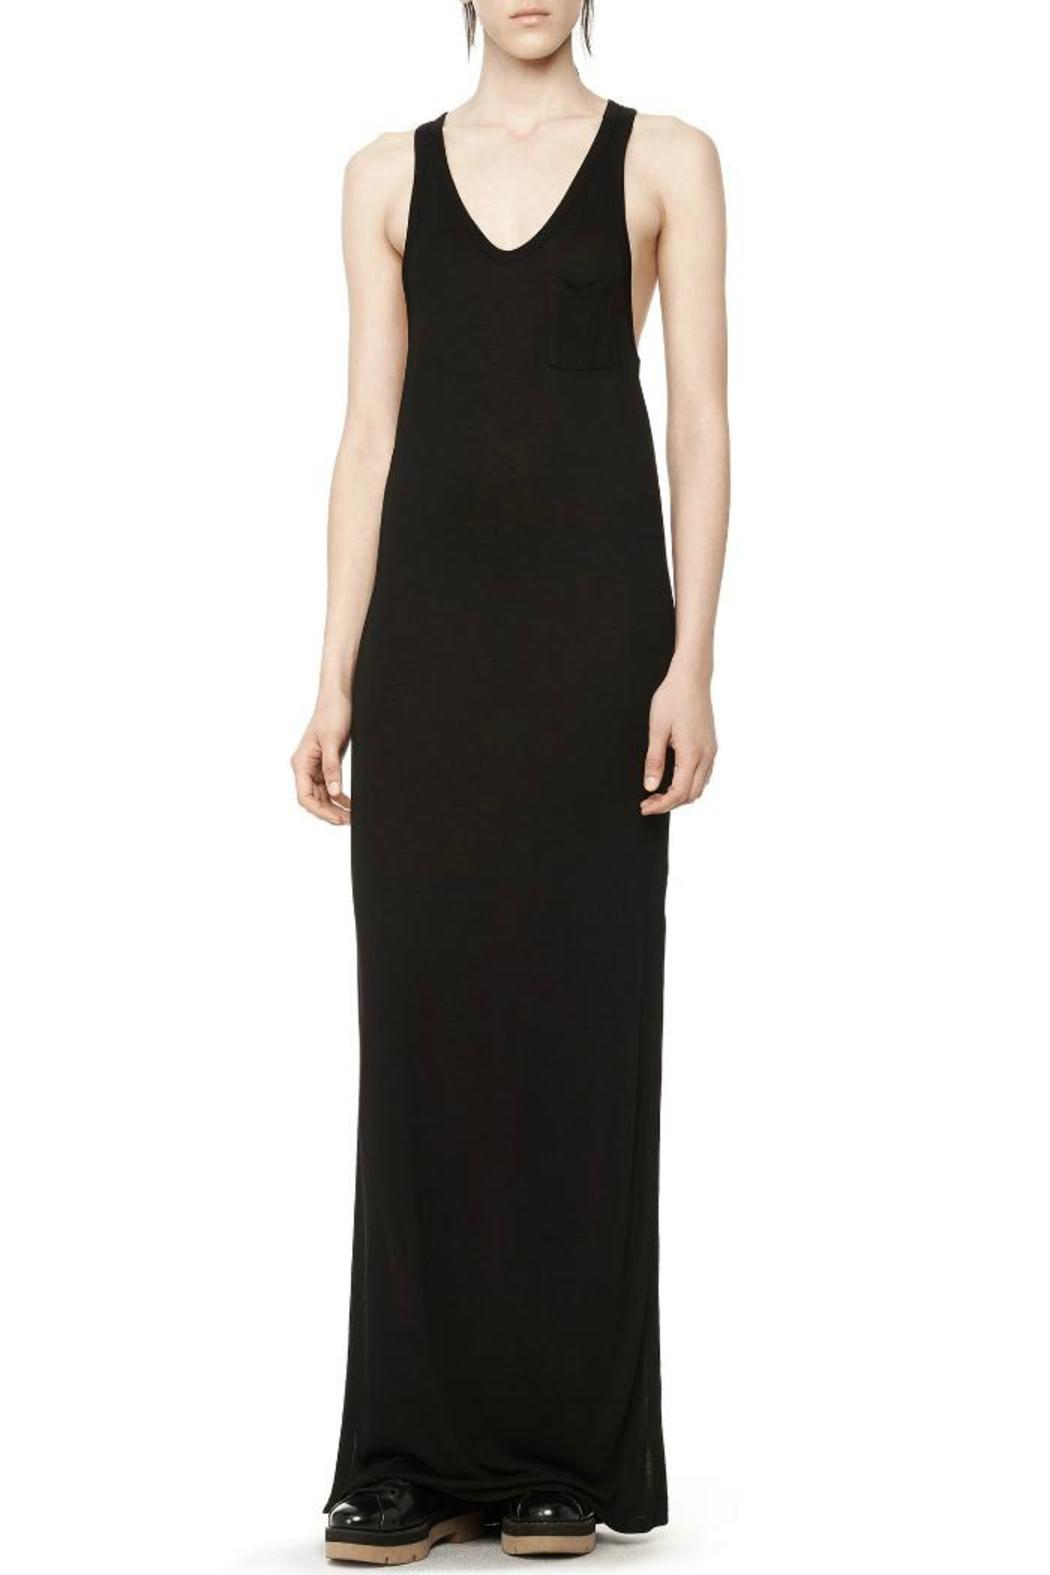 T by alexander wang classic tank dress from canada by era for Alexander wang wedding dresses